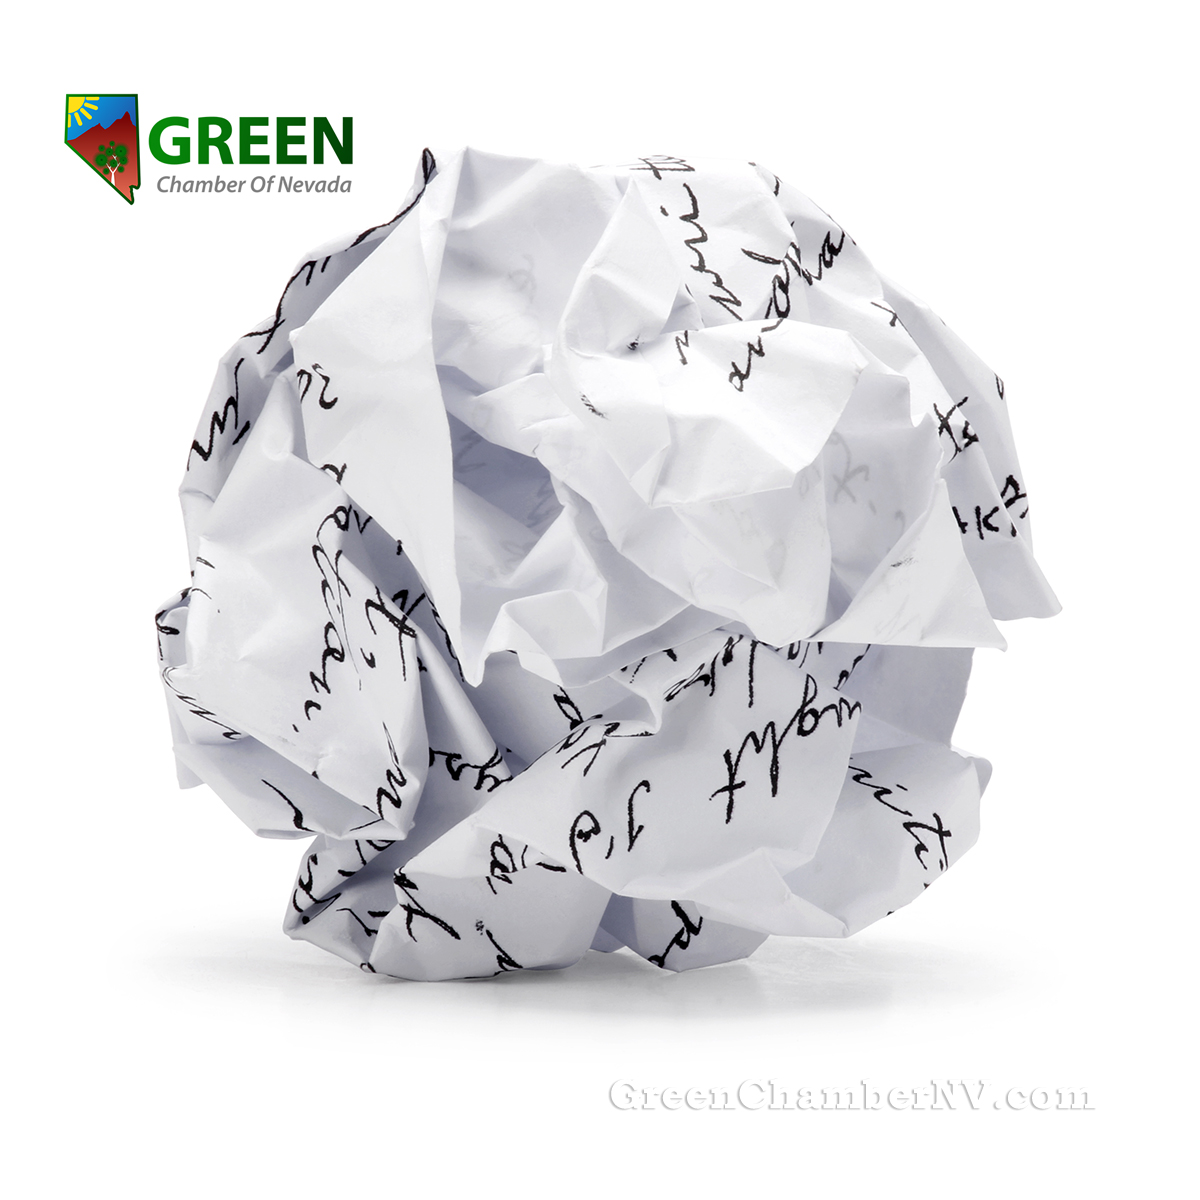 4 Inventive Ways to Reuse Paper